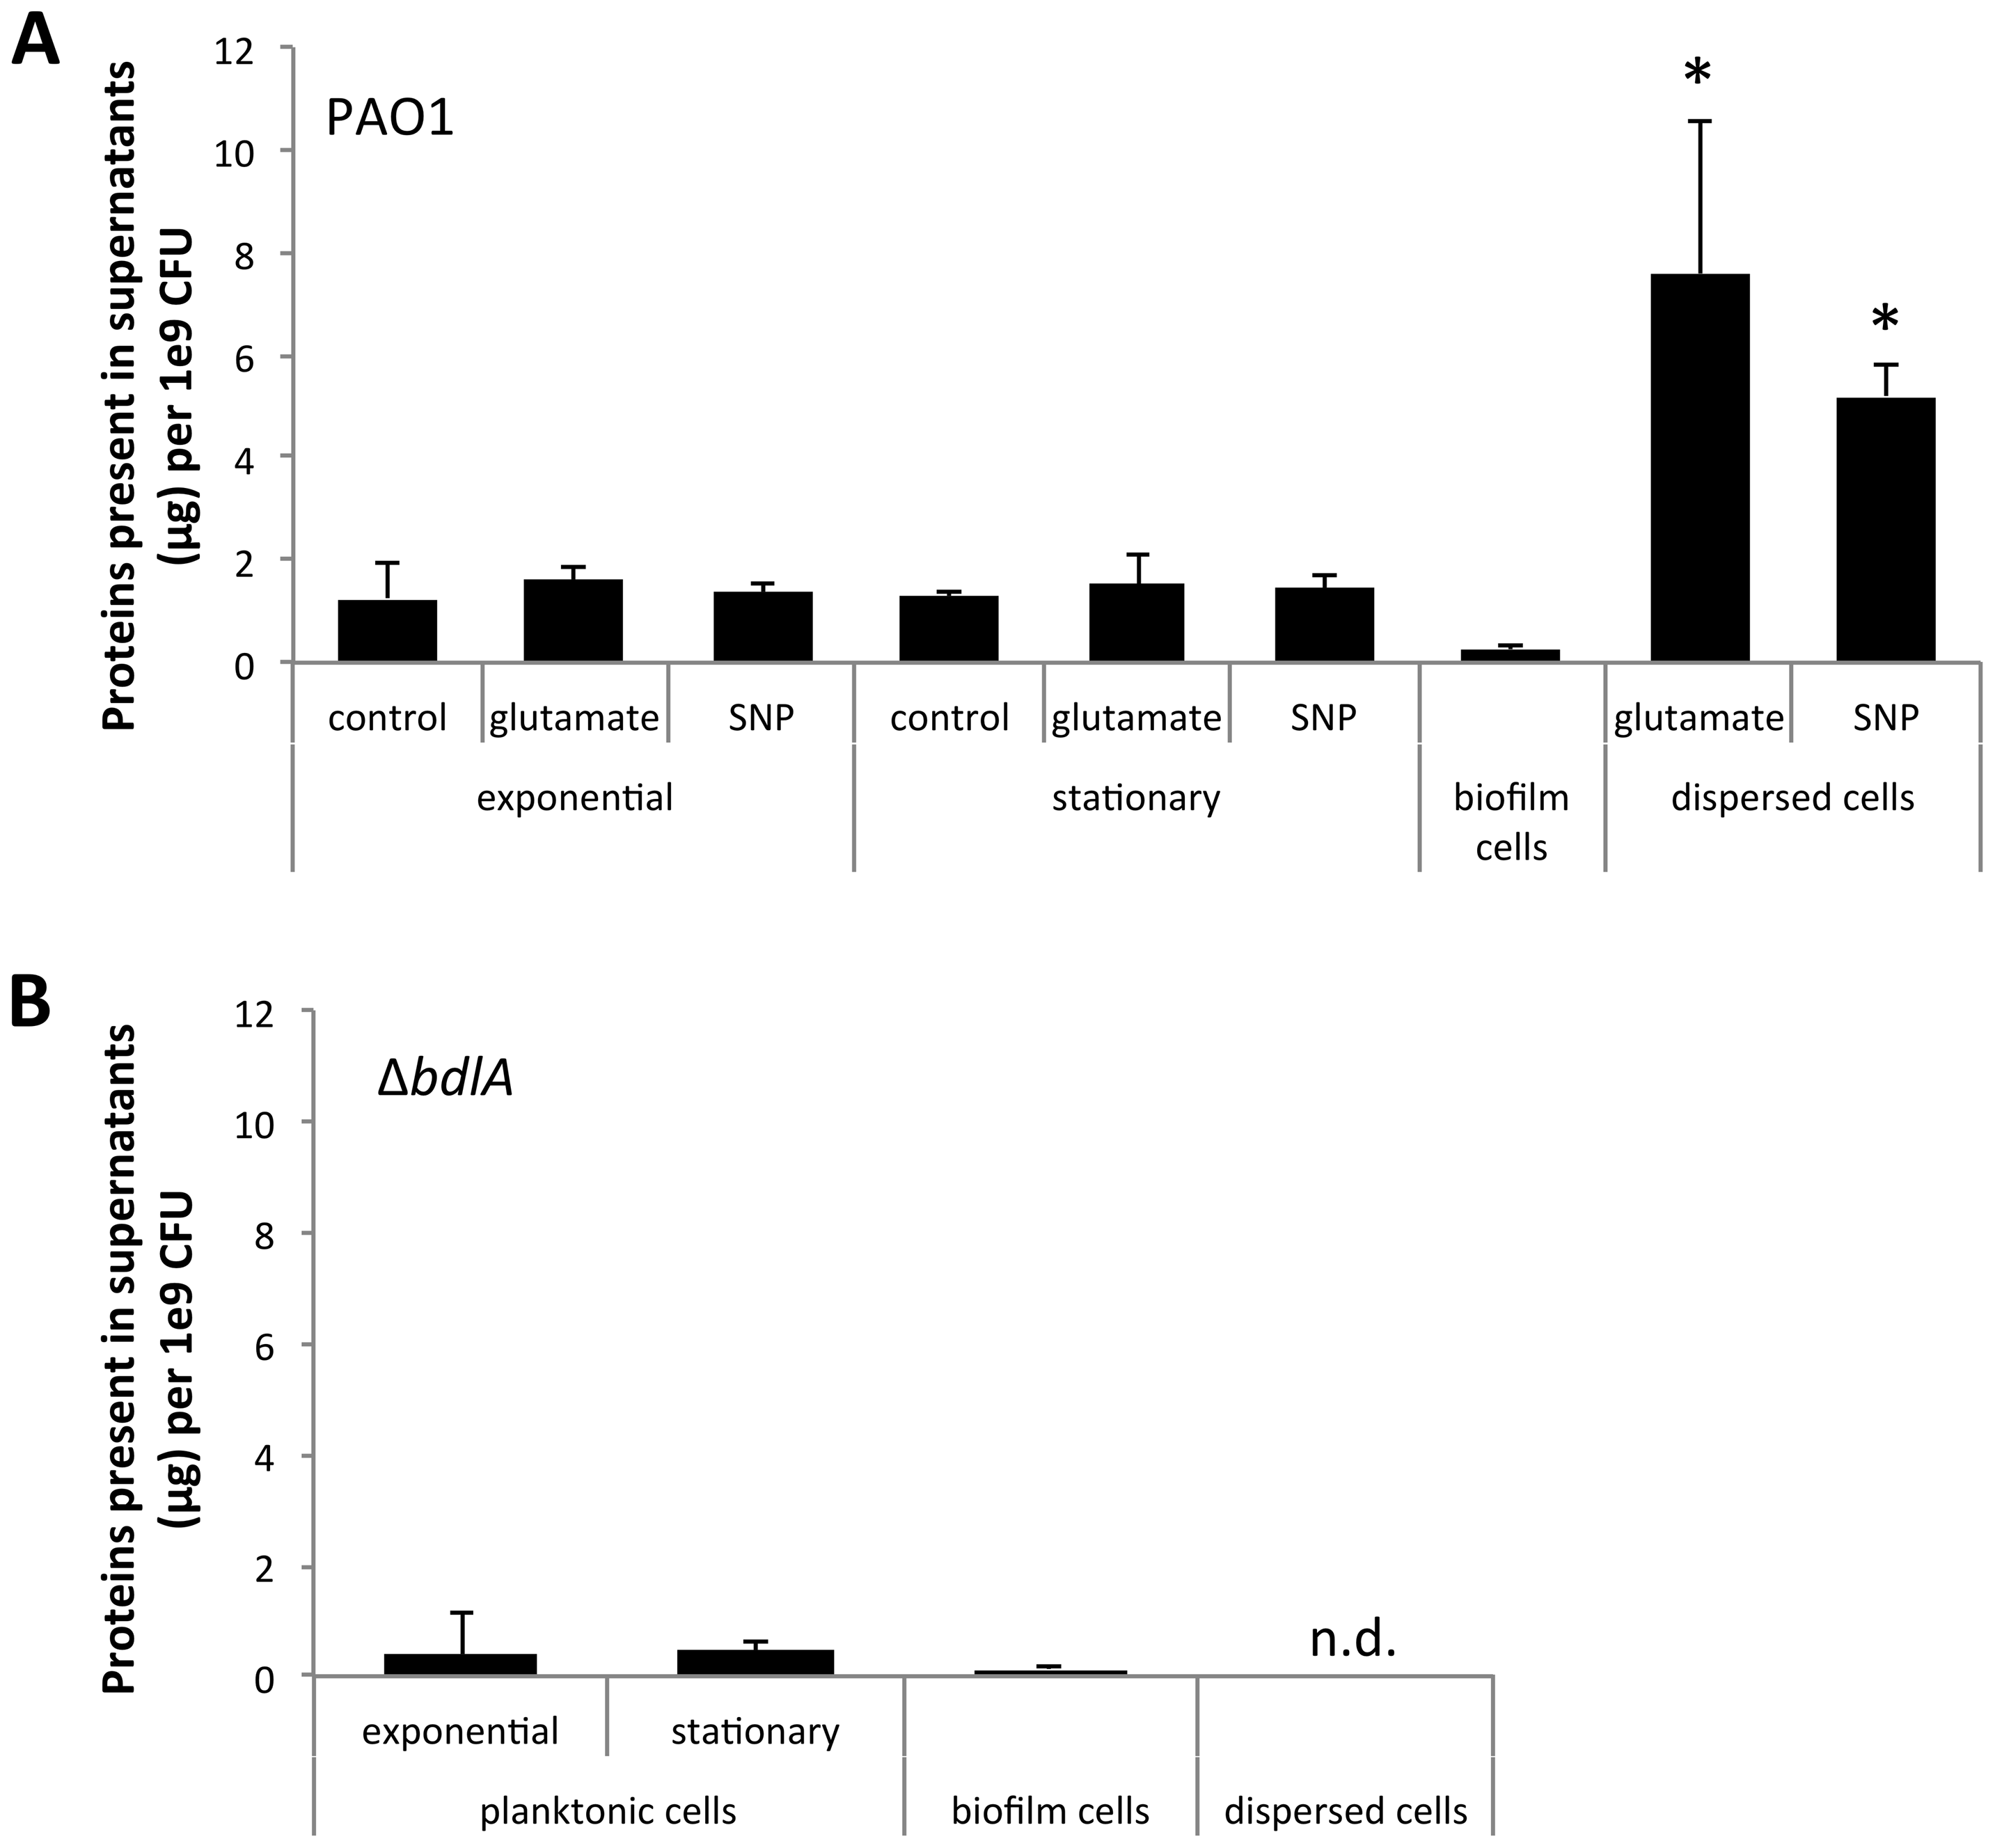 Dispersion of <i>P. aeruginosa</i> PAO1 biofilms correlates with increased release of proteins into the supernatant.